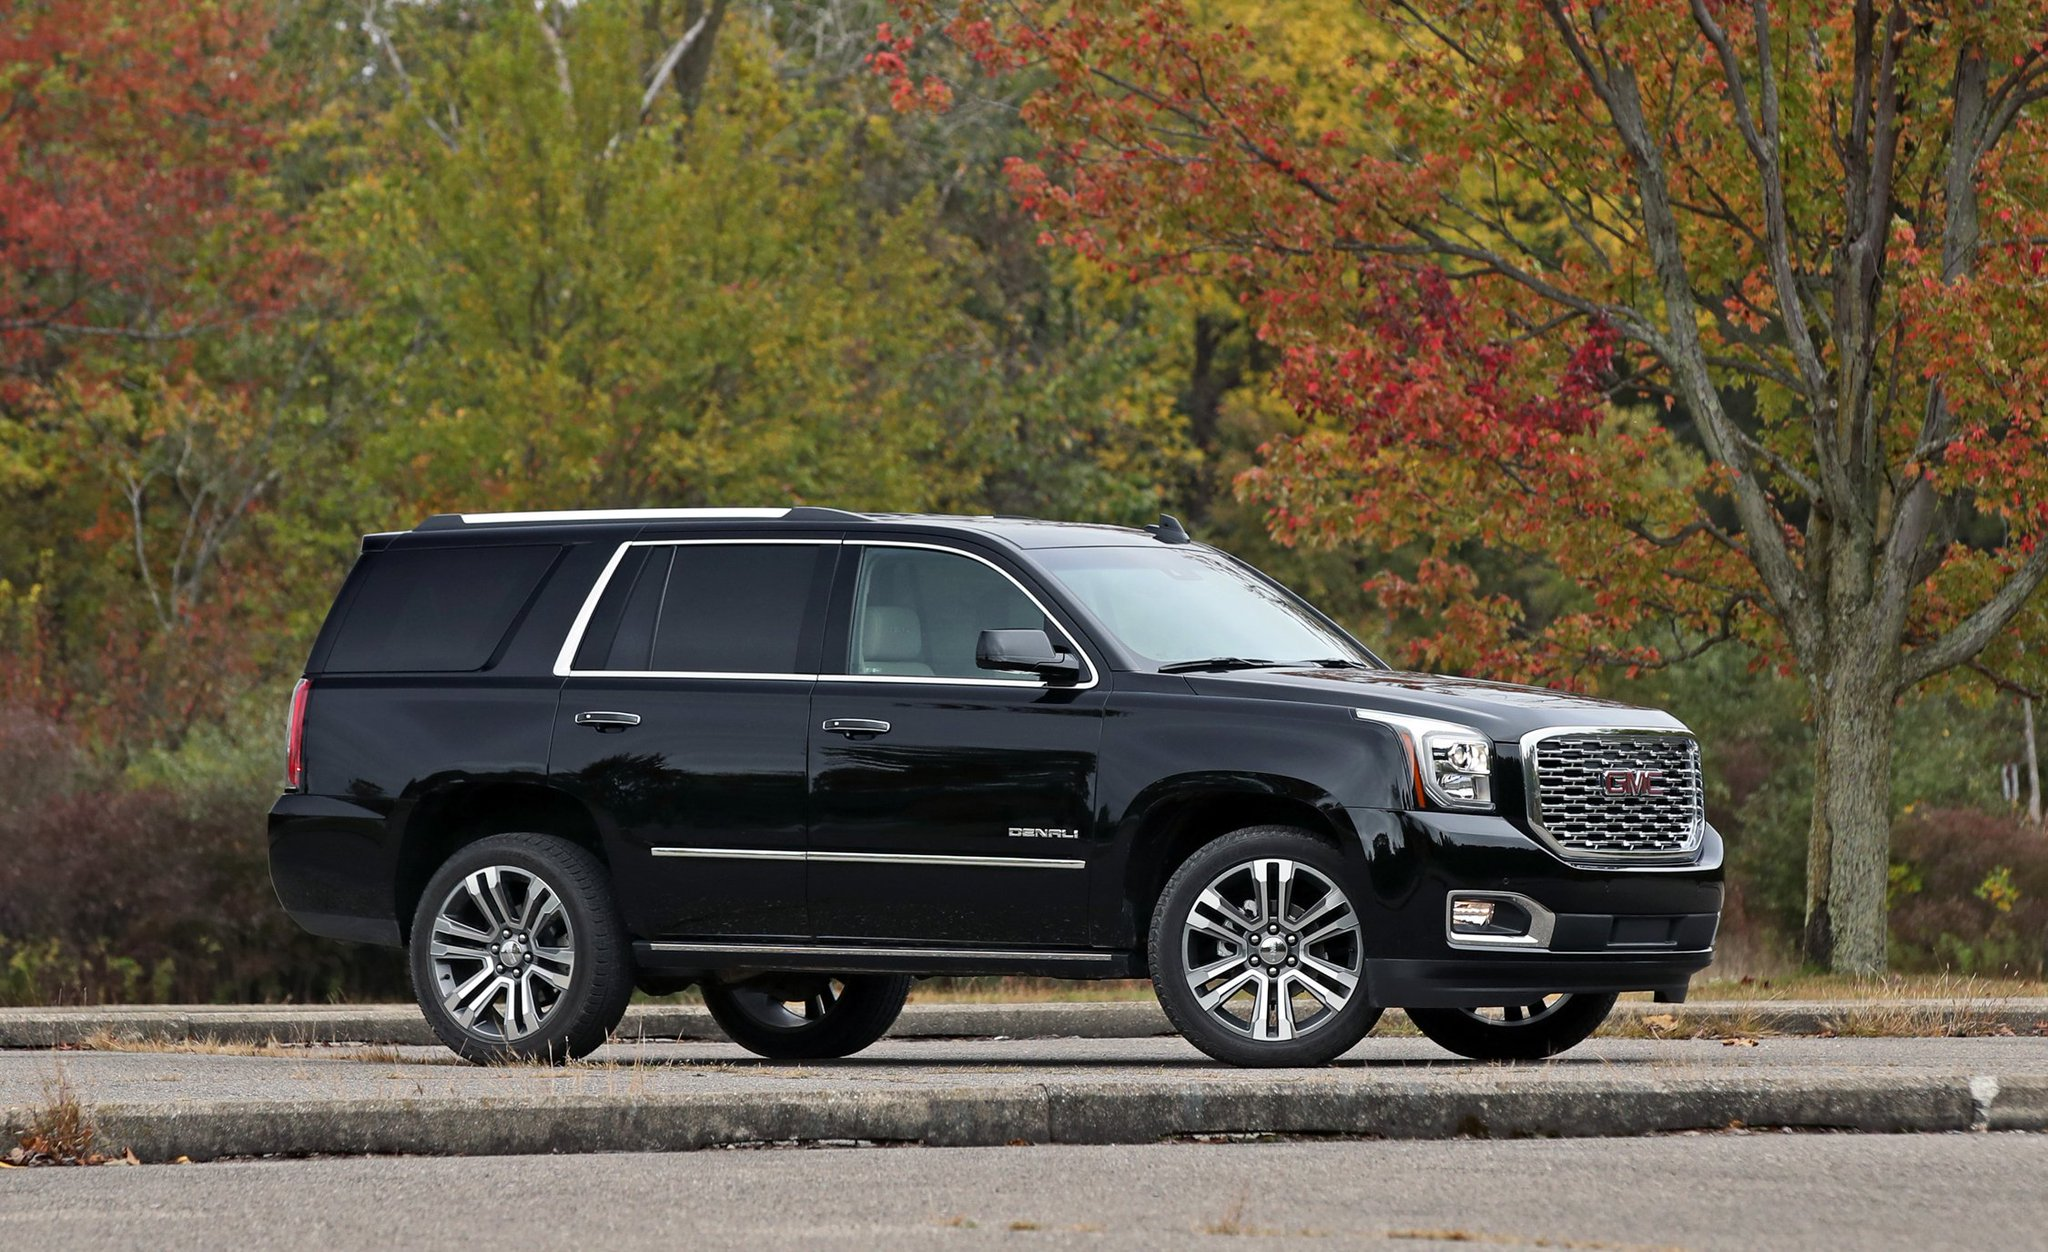 Car And Driver On Twitter The 2018 Gmc Yukon Denali Gets Some Minor Updates And A 10 Speed Automatic Tested Https T Co 9r6gf26yyn